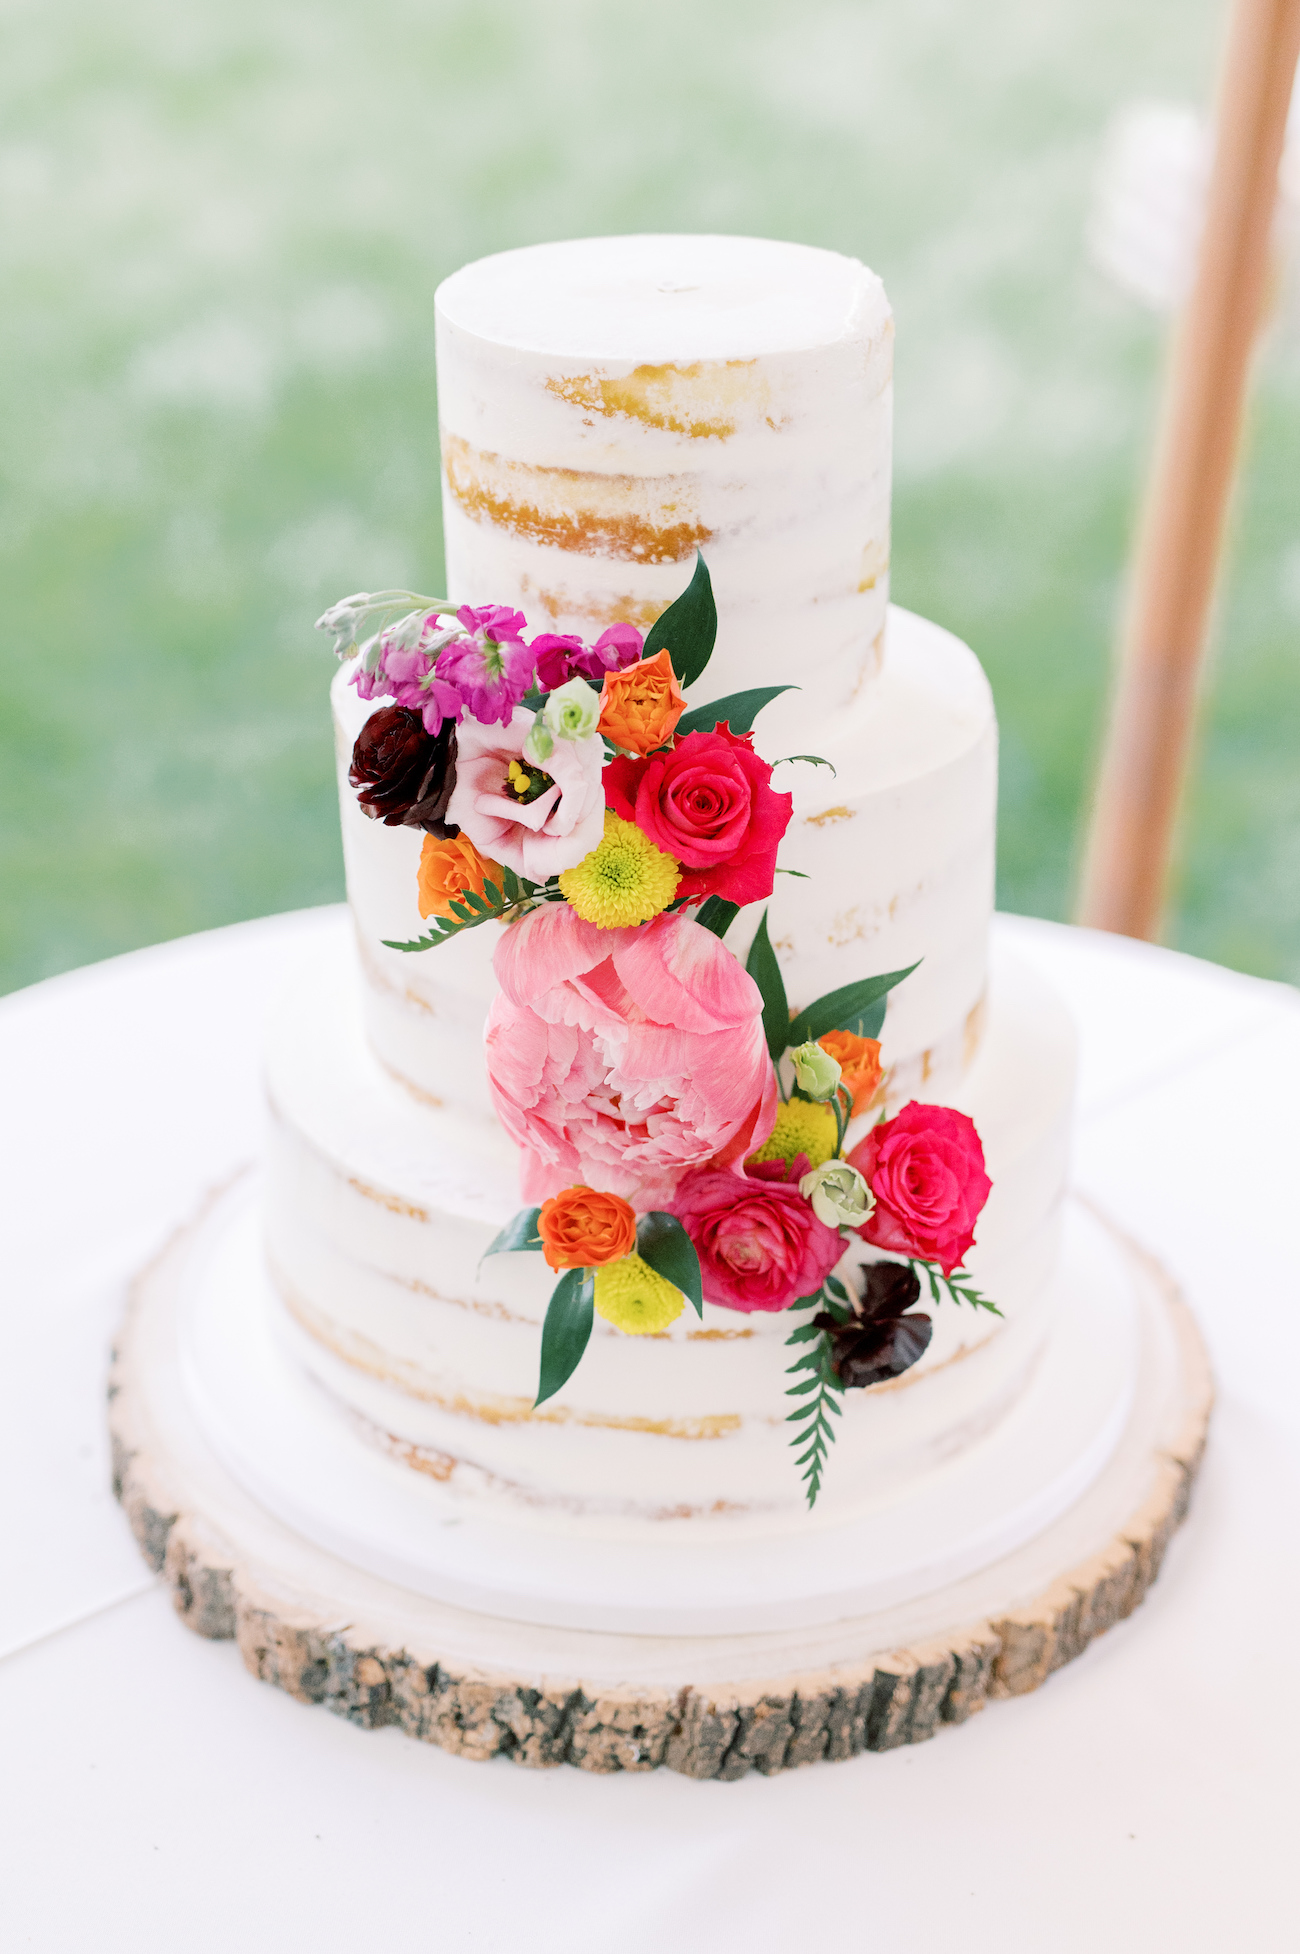 Naked wedding cake with floral decoration